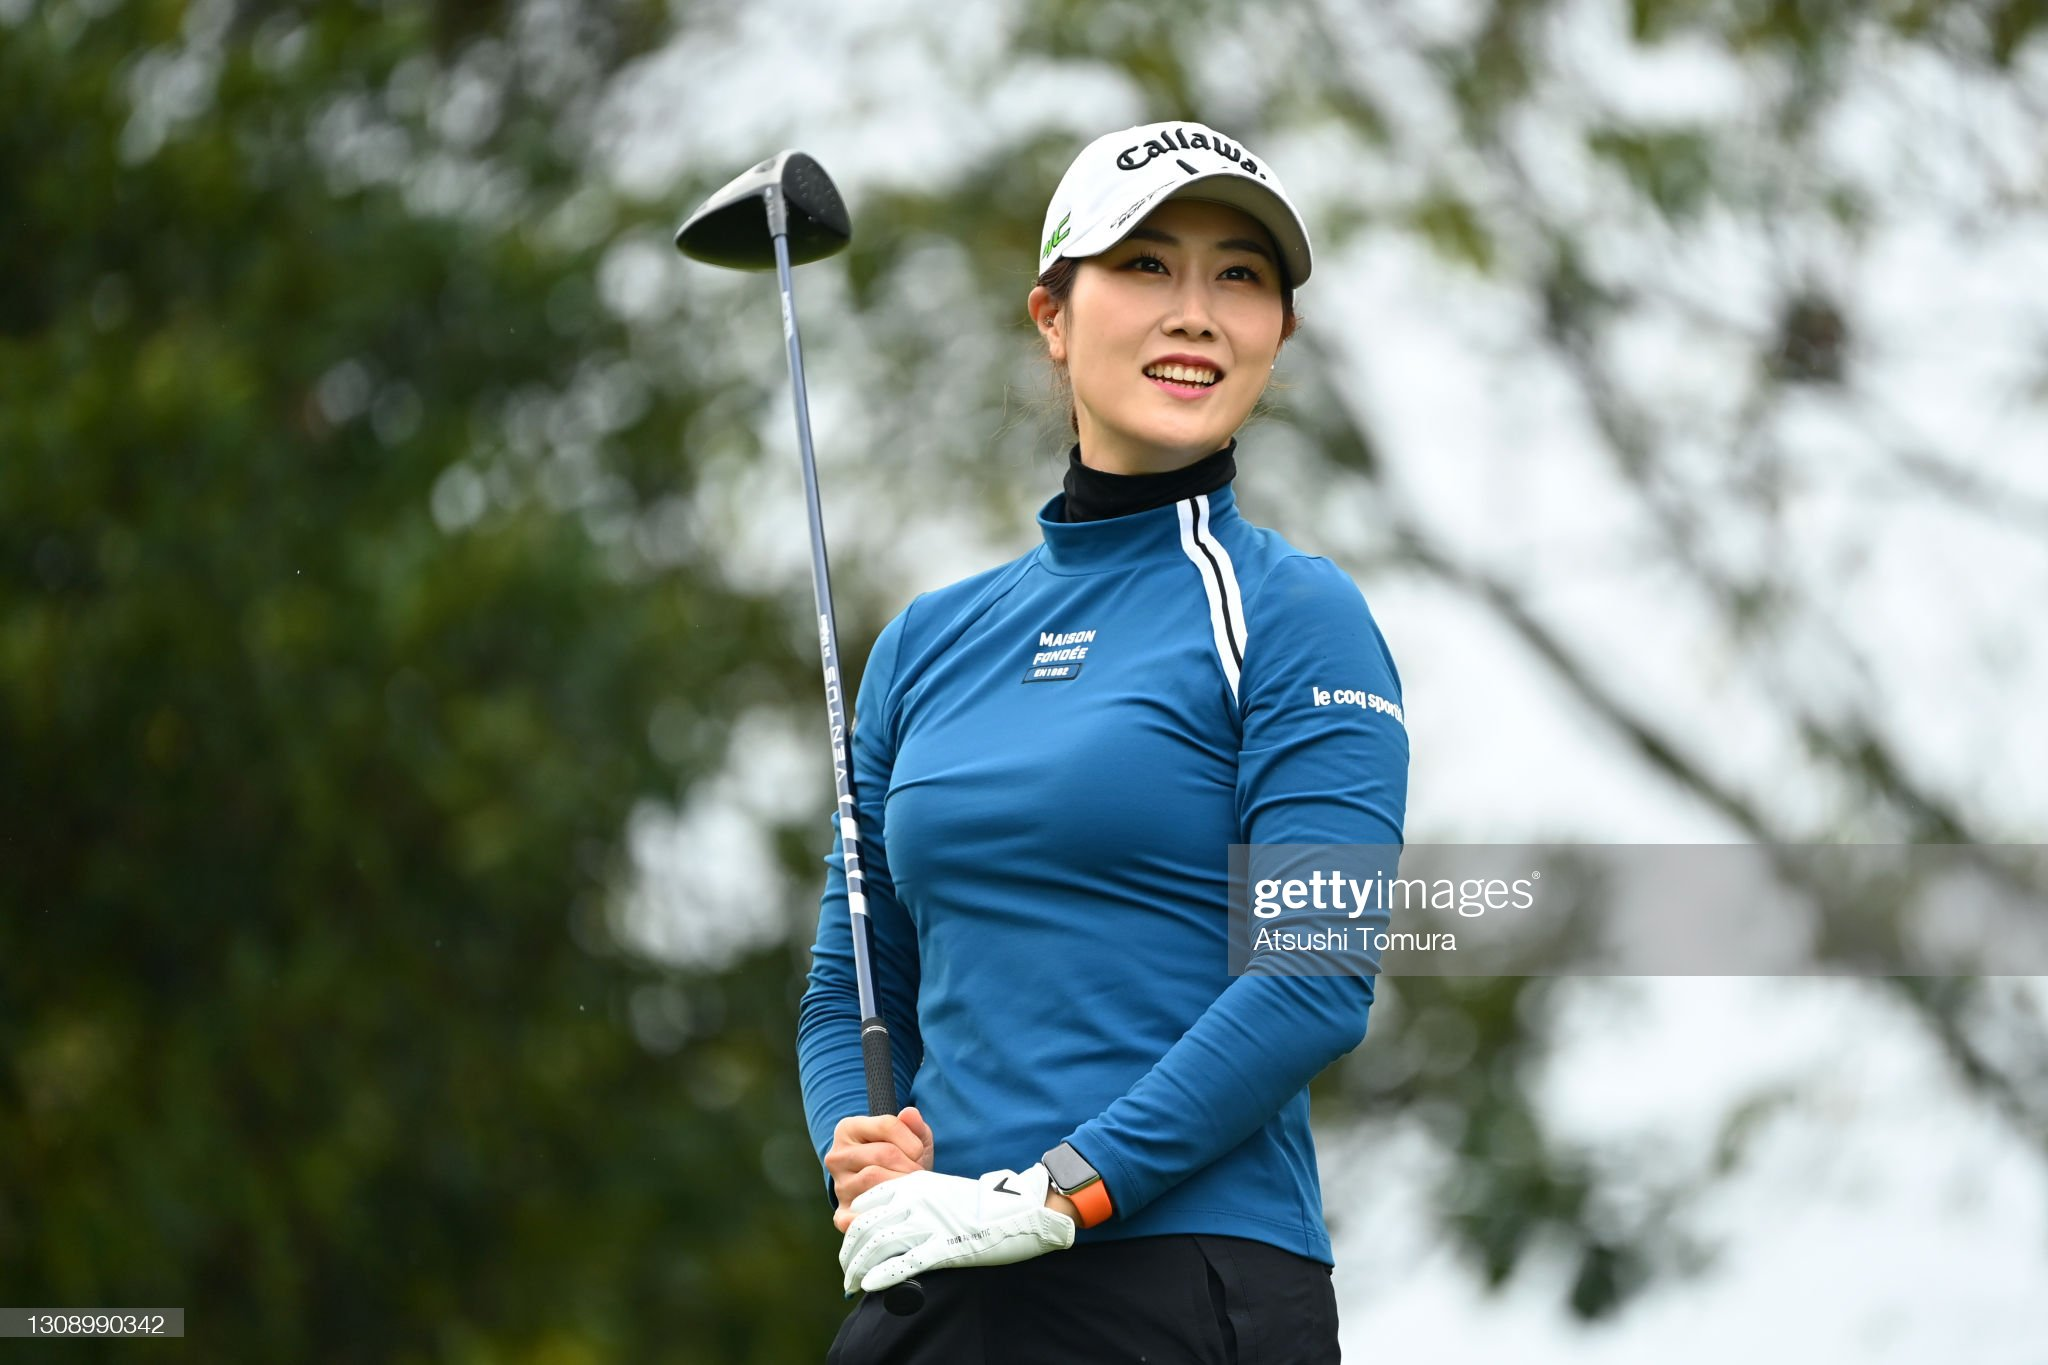 https://media.gettyimages.com/photos/kim-haneul-of-south-korea-reacts-after-her-tee-shot-on-the-12th-hole-picture-id1308990342?s=2048x2048